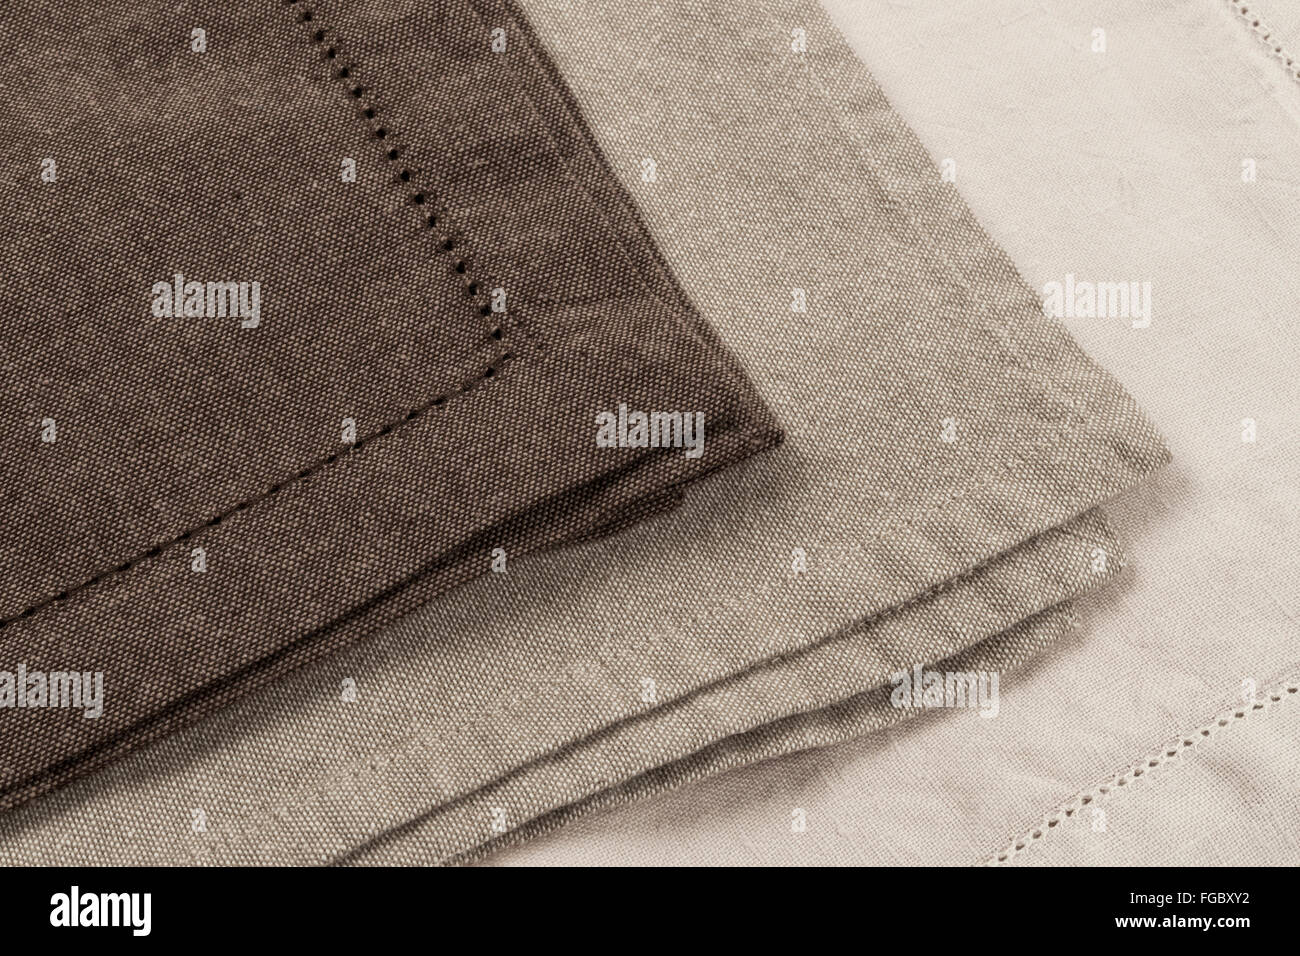 Edges of linen cloth napkins in brown and beige natural colors close up - Stock Image